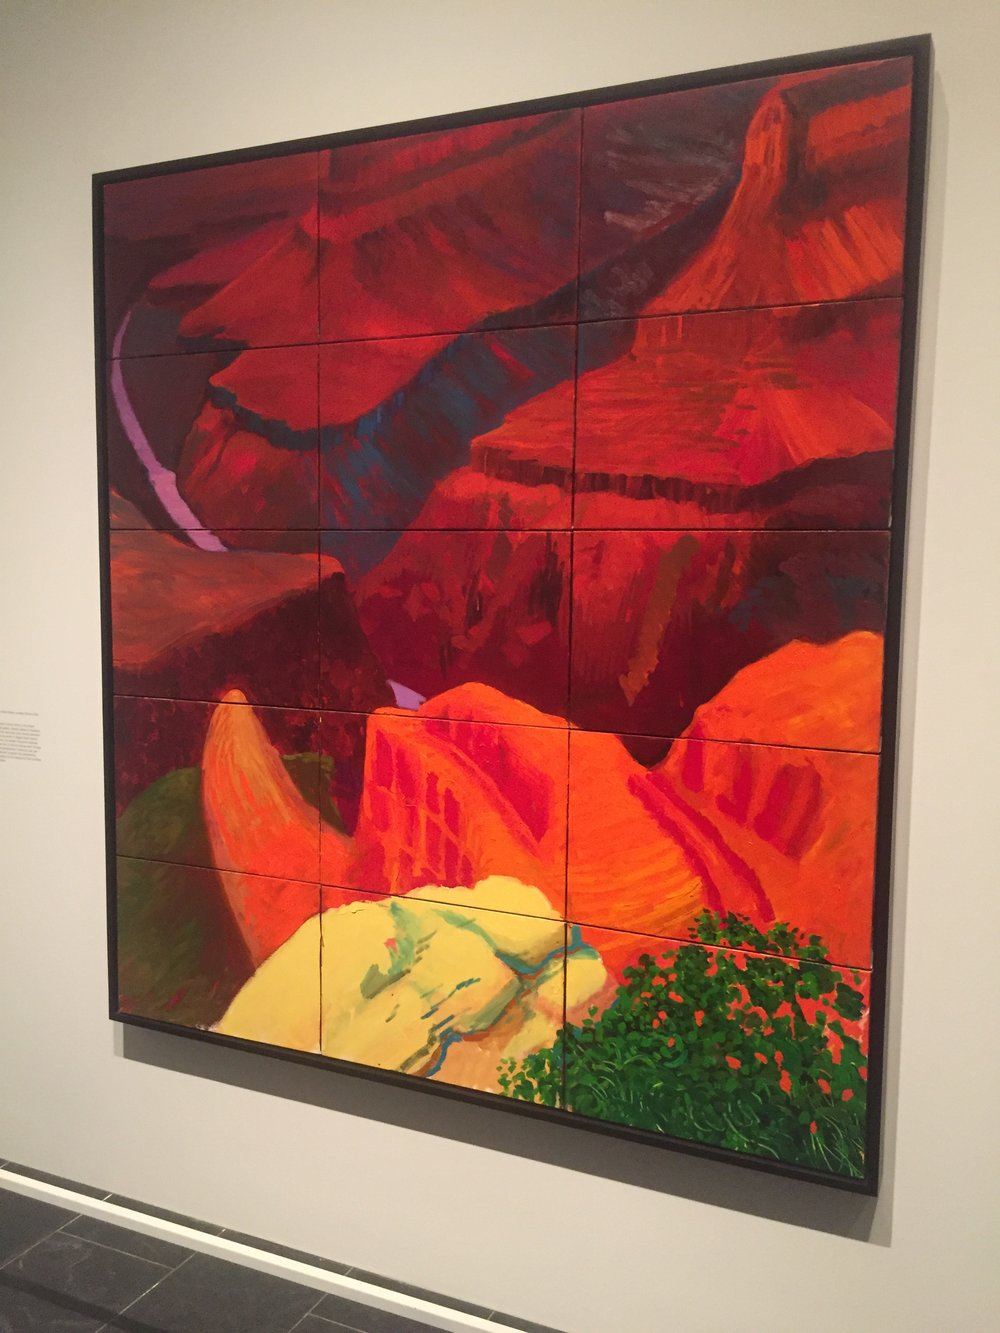 David Hockney Grand Canyon Painting.JPG